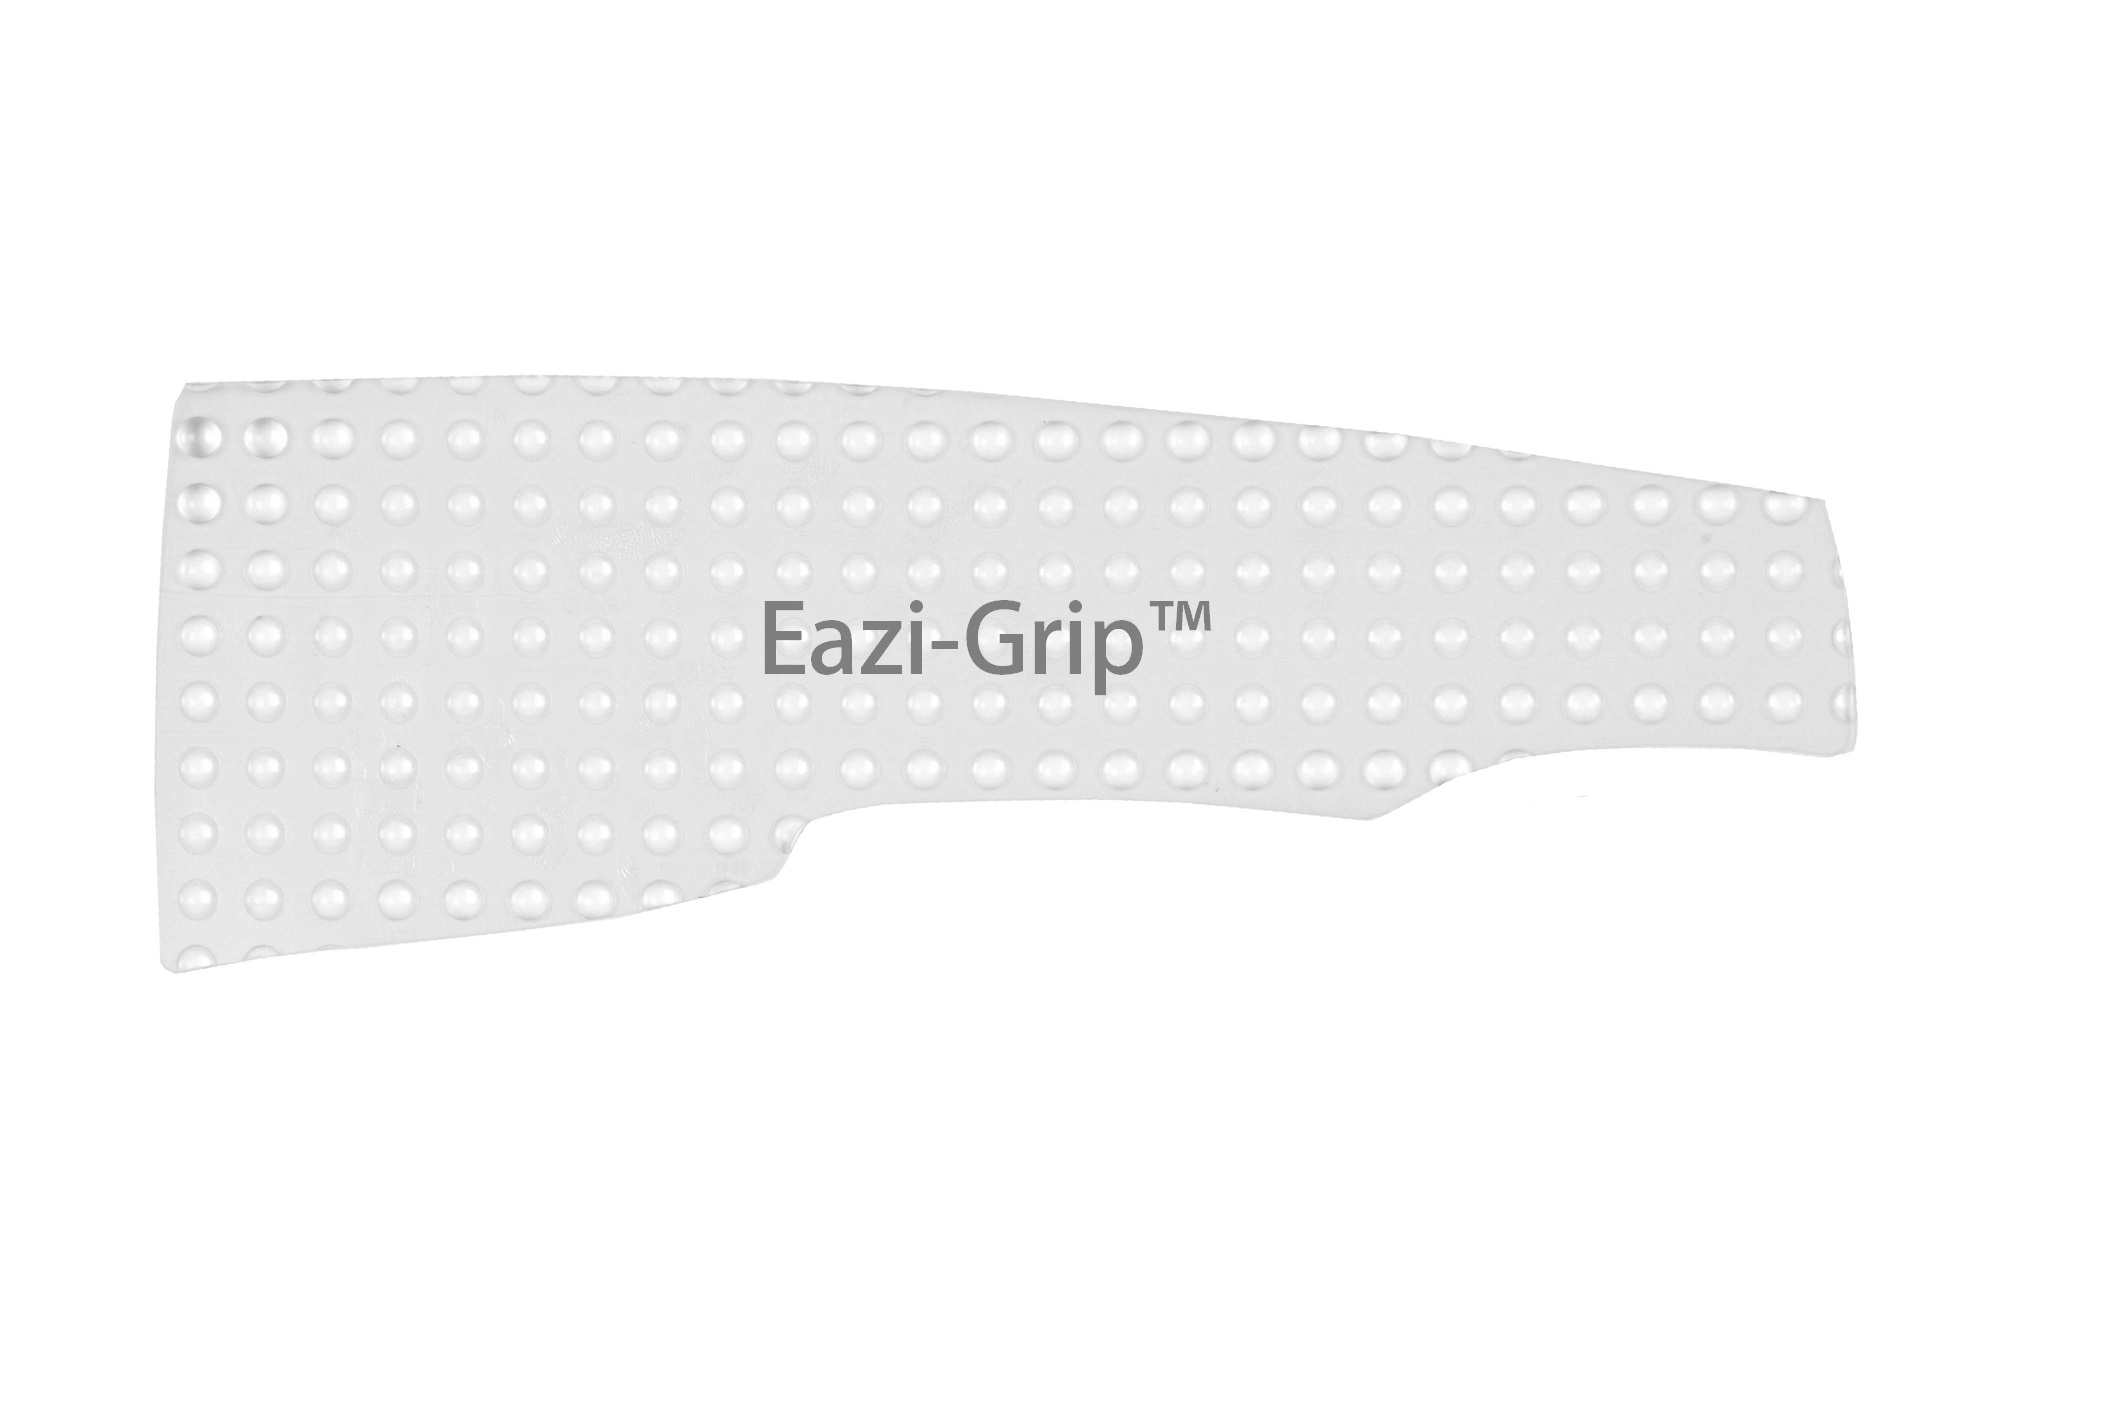 Eazi-Grip Evo Ridged Tank Grip Universal Cut To Fit/Clear - #EVORIDGEDUNICL Ridged Grips Set EVO Clear